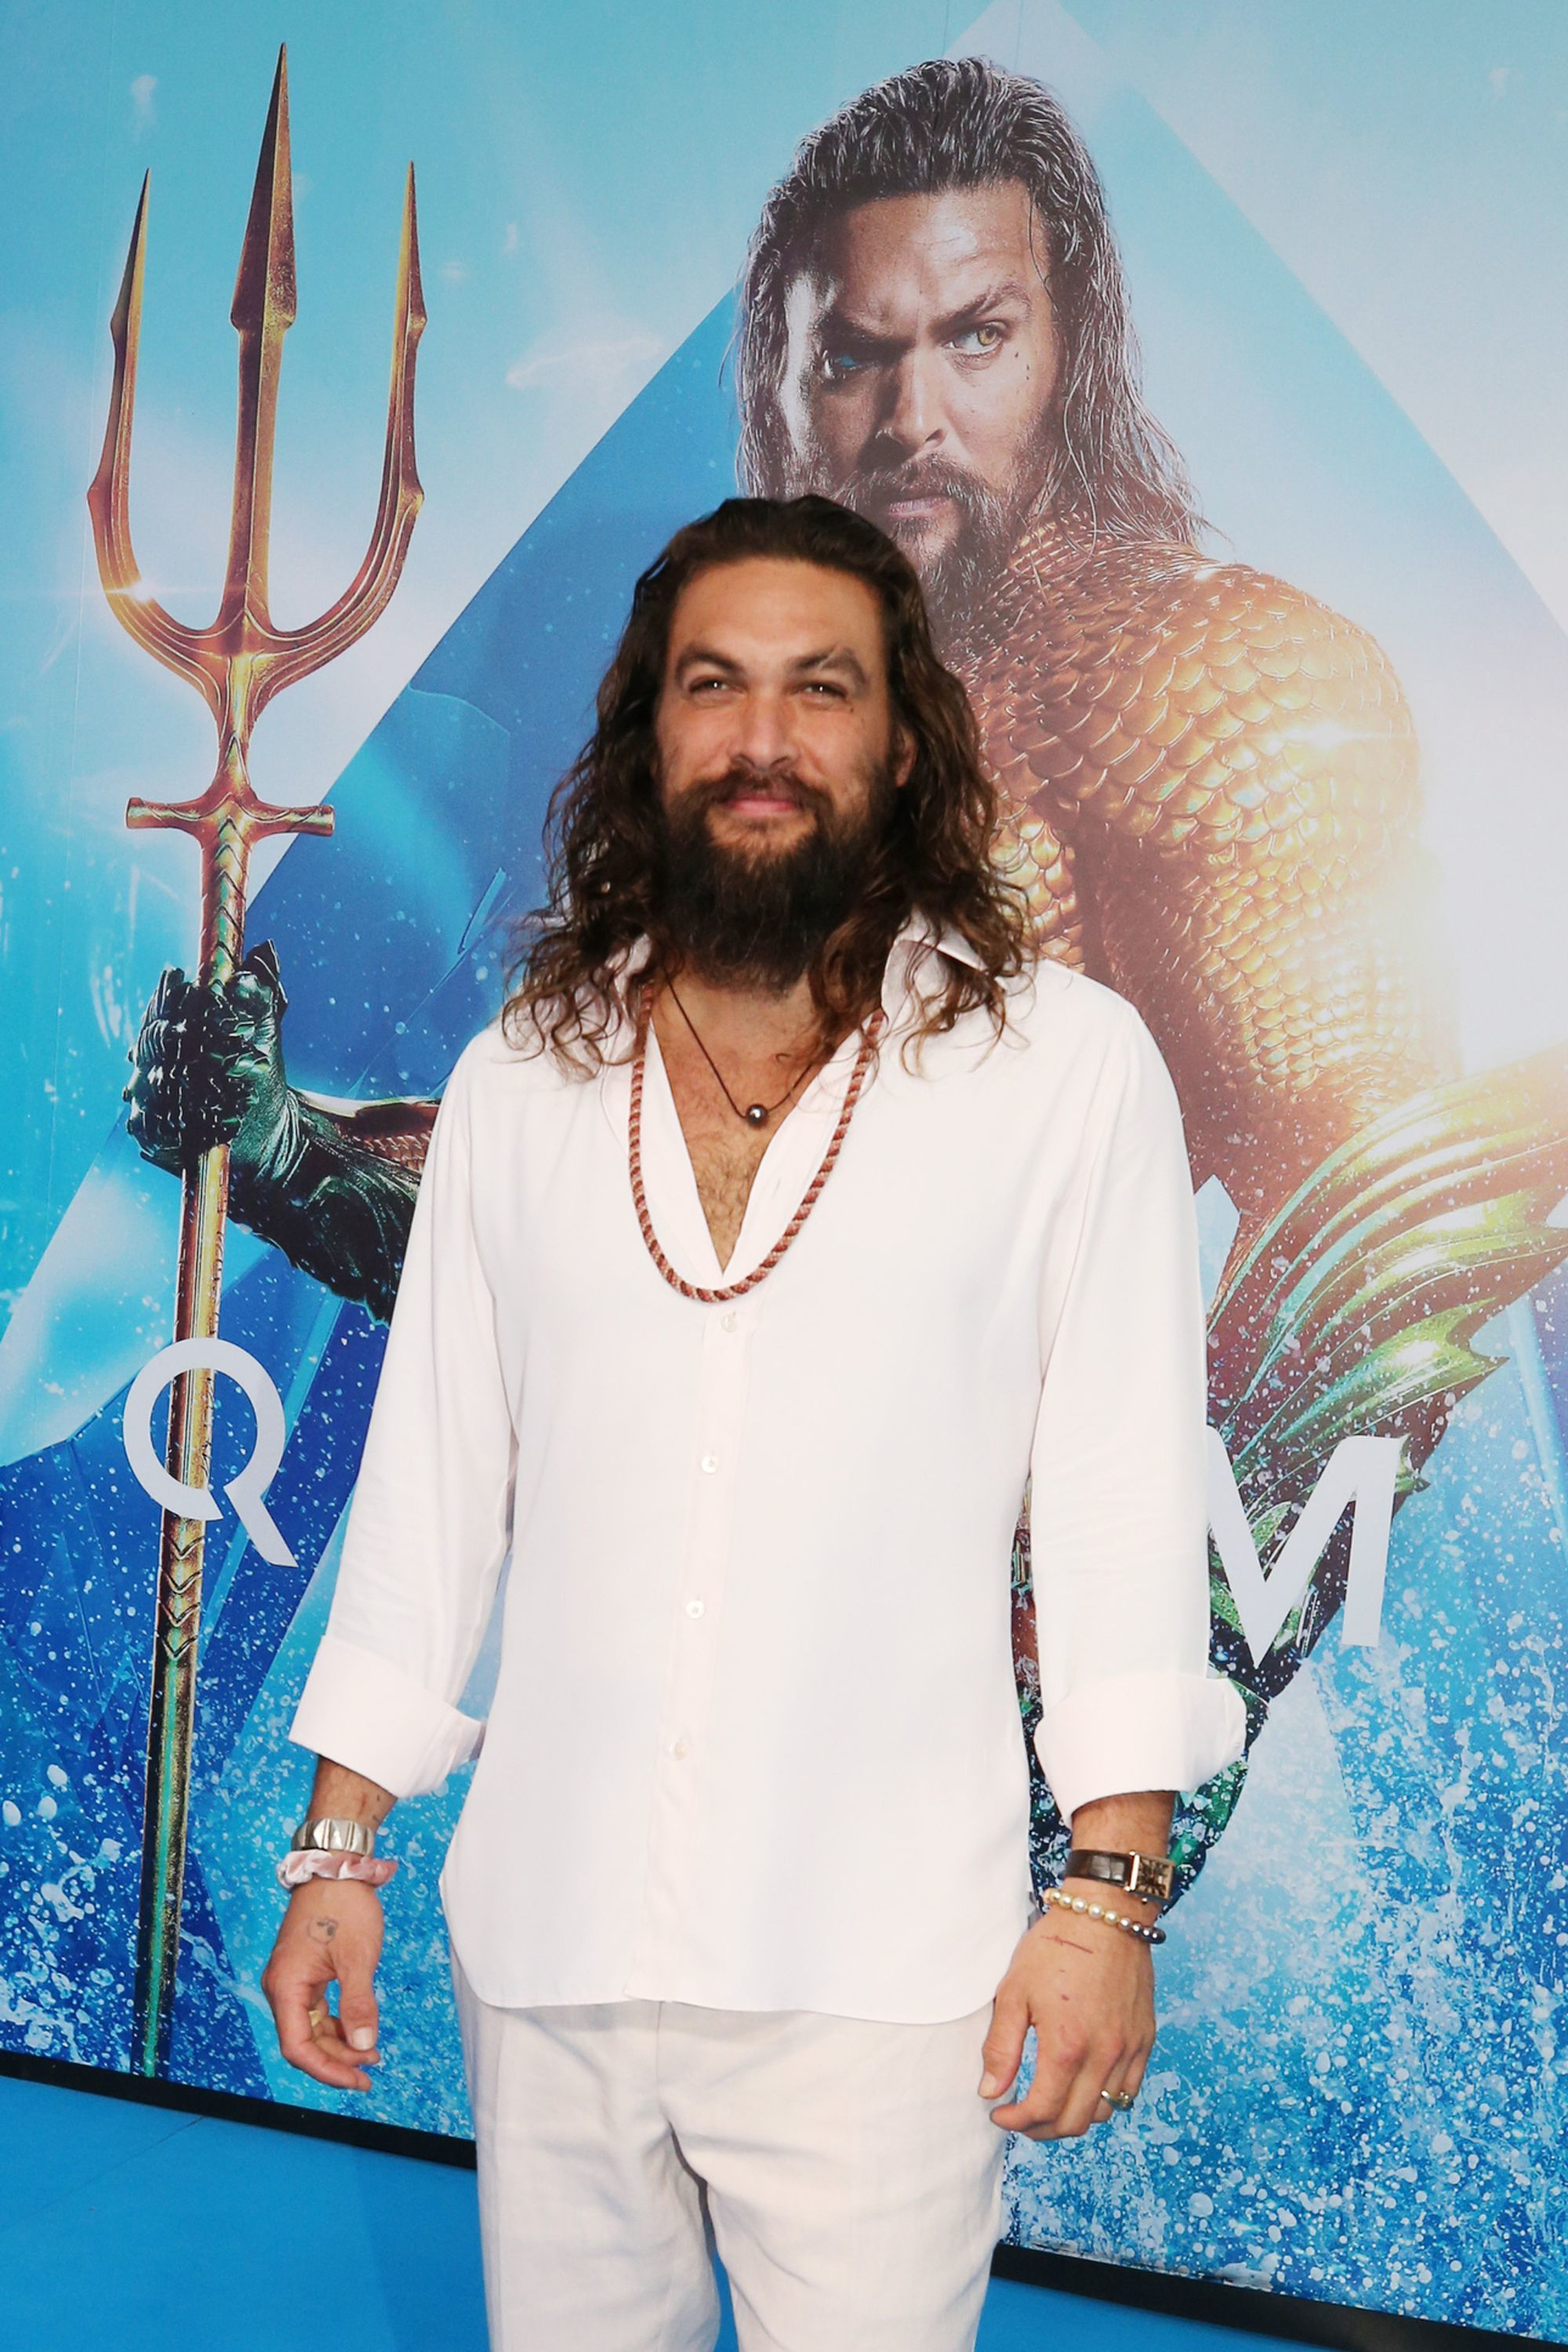 Lisa Bonet Would Probably Leave Jason Momoa If He Did This Says Aquaman Star Wonderwall Com